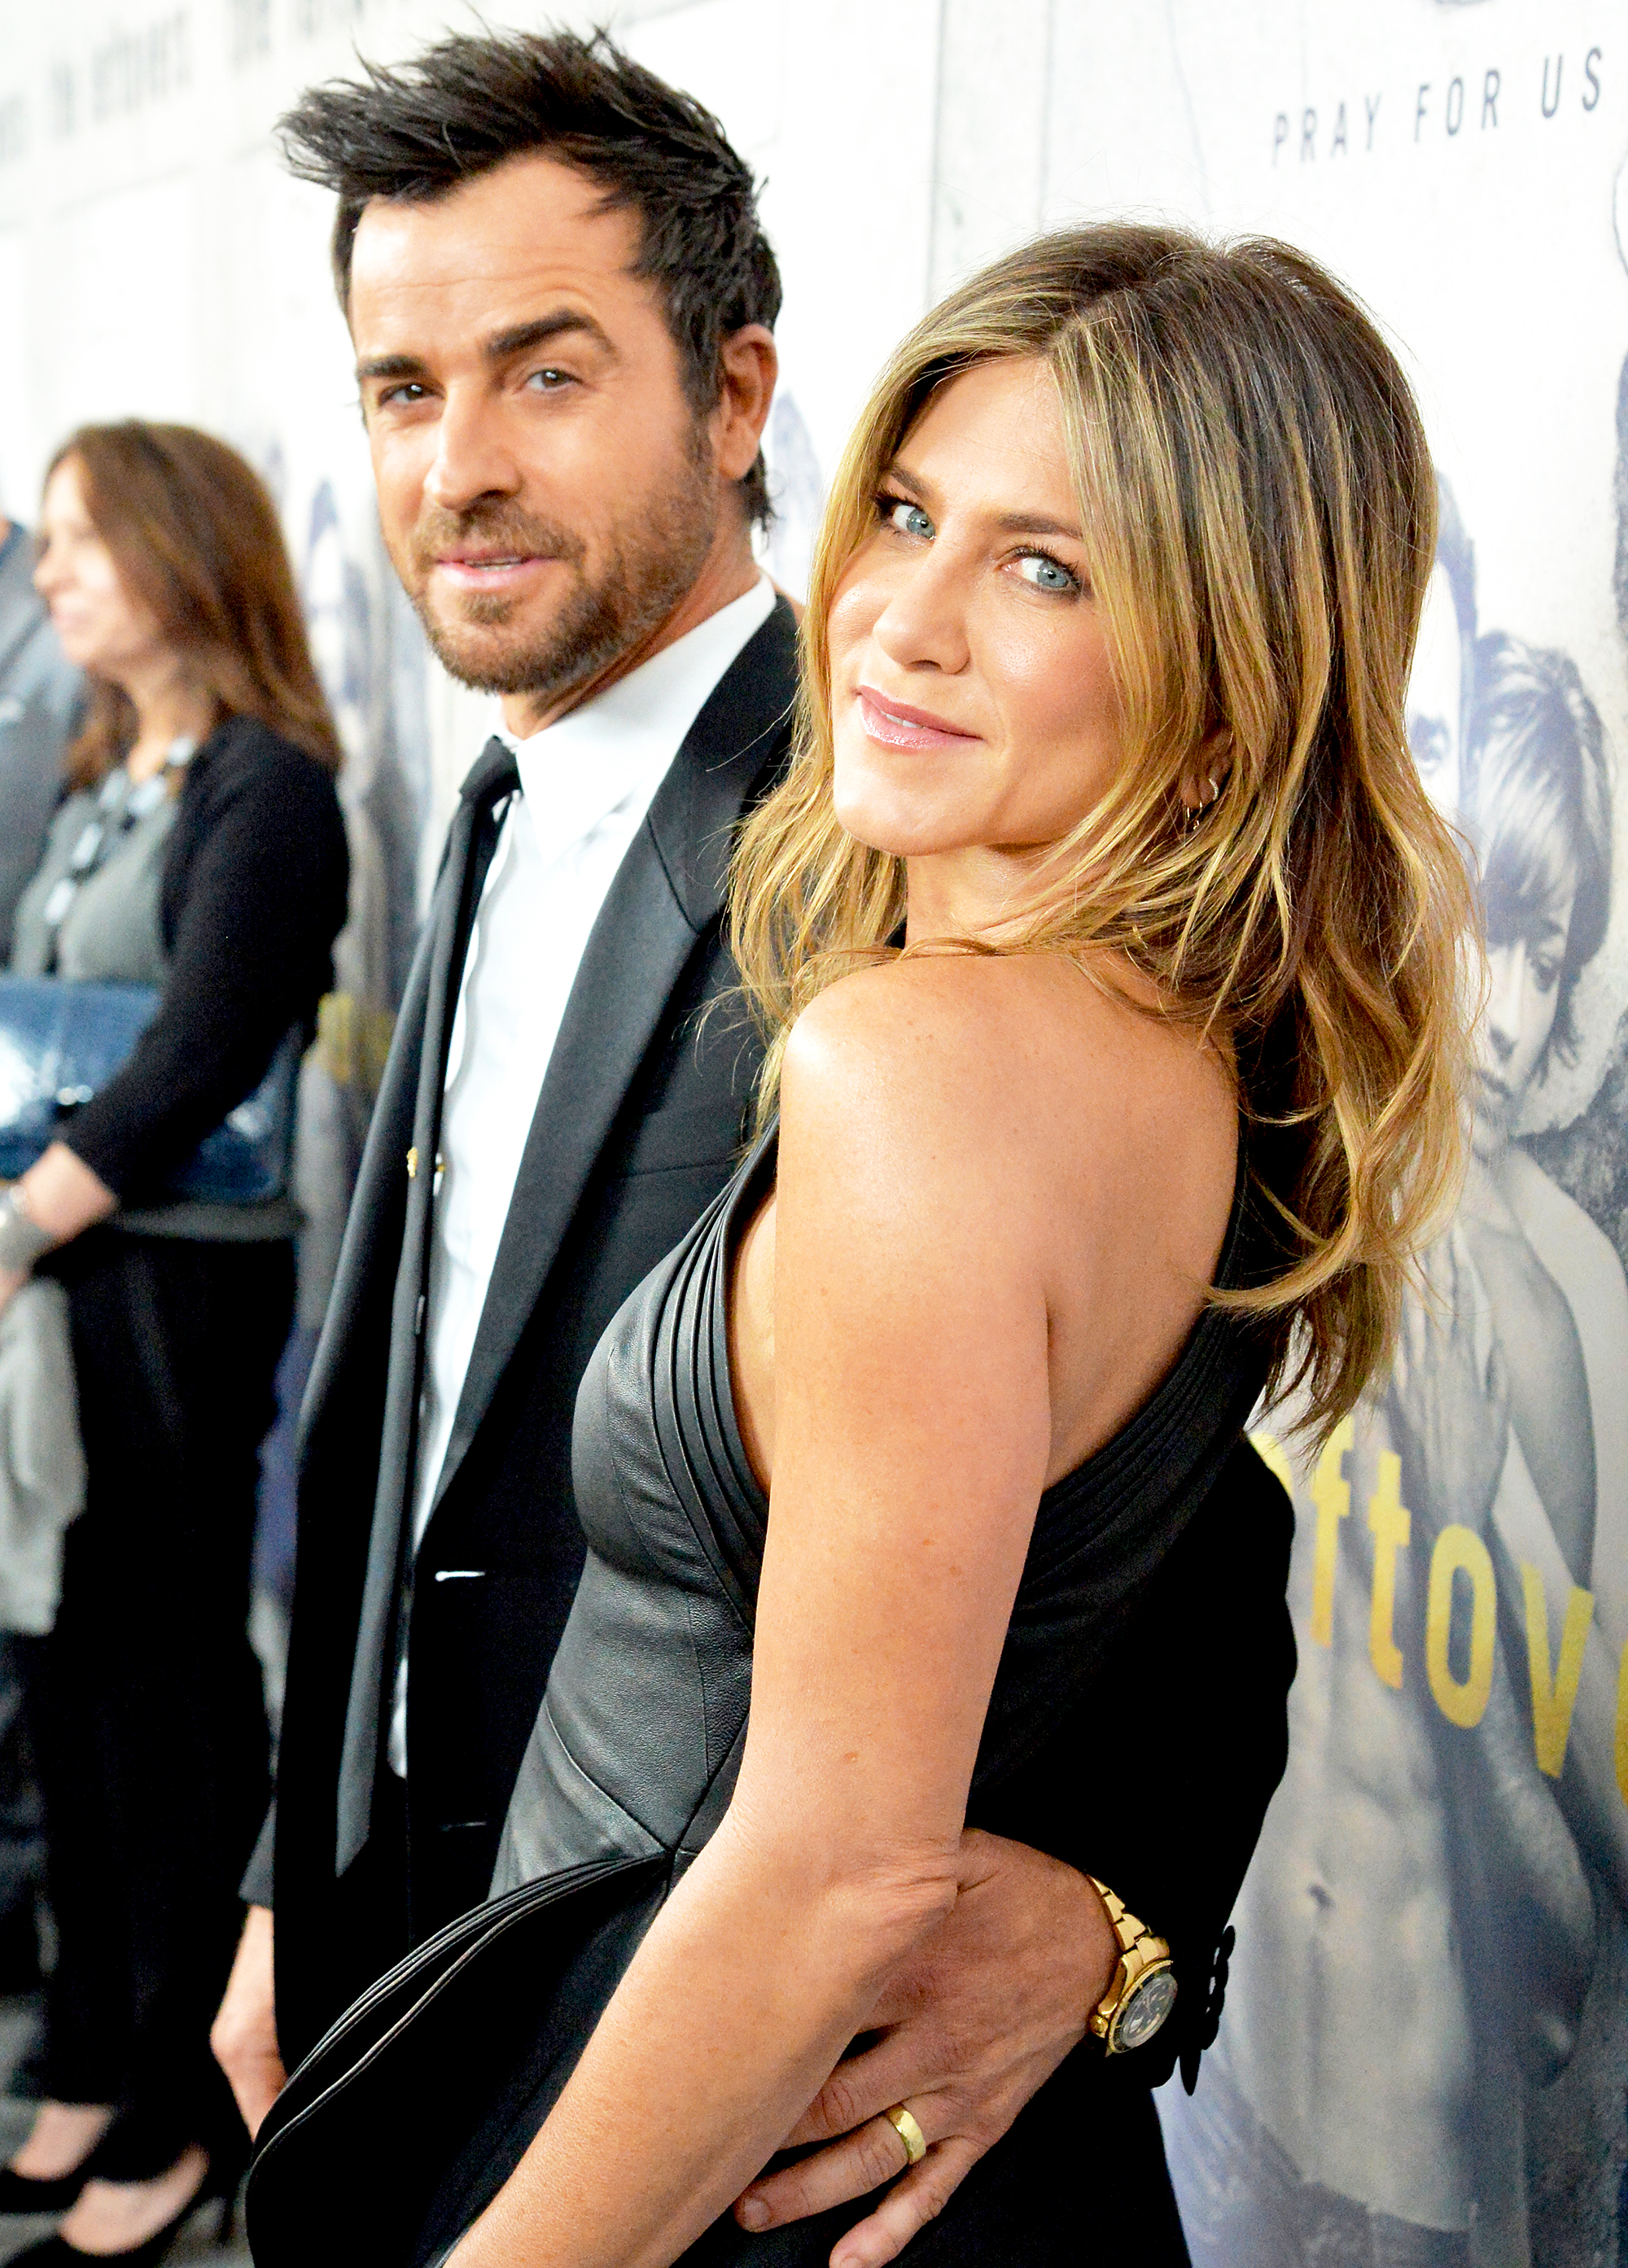 Aniston and Theroux are going to become parents